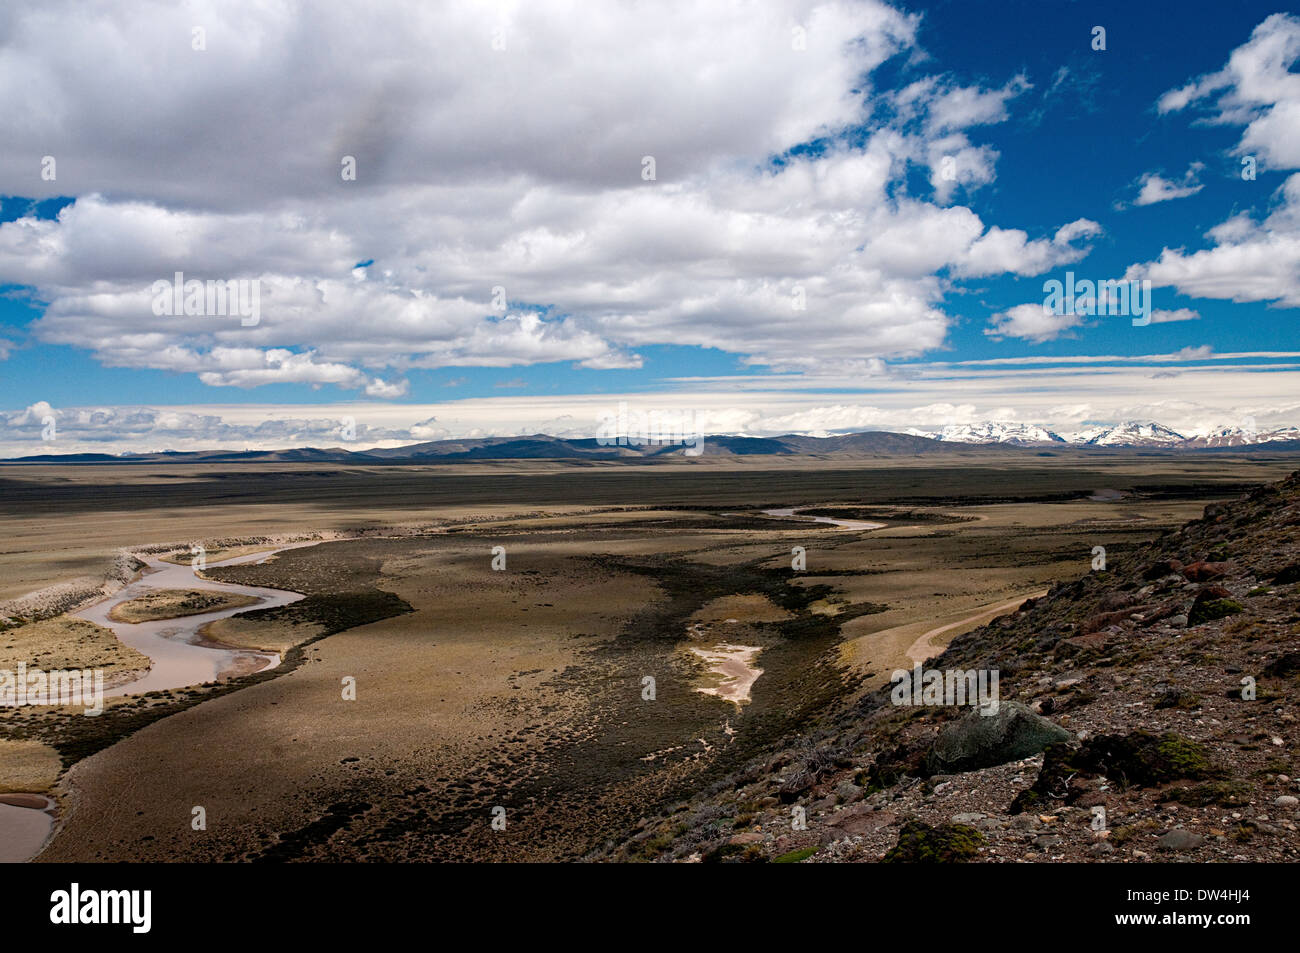 View of the Río Belgrano with the Andes in the distance, Patagonia, Santa Cruz Province, Argentina - Stock Image